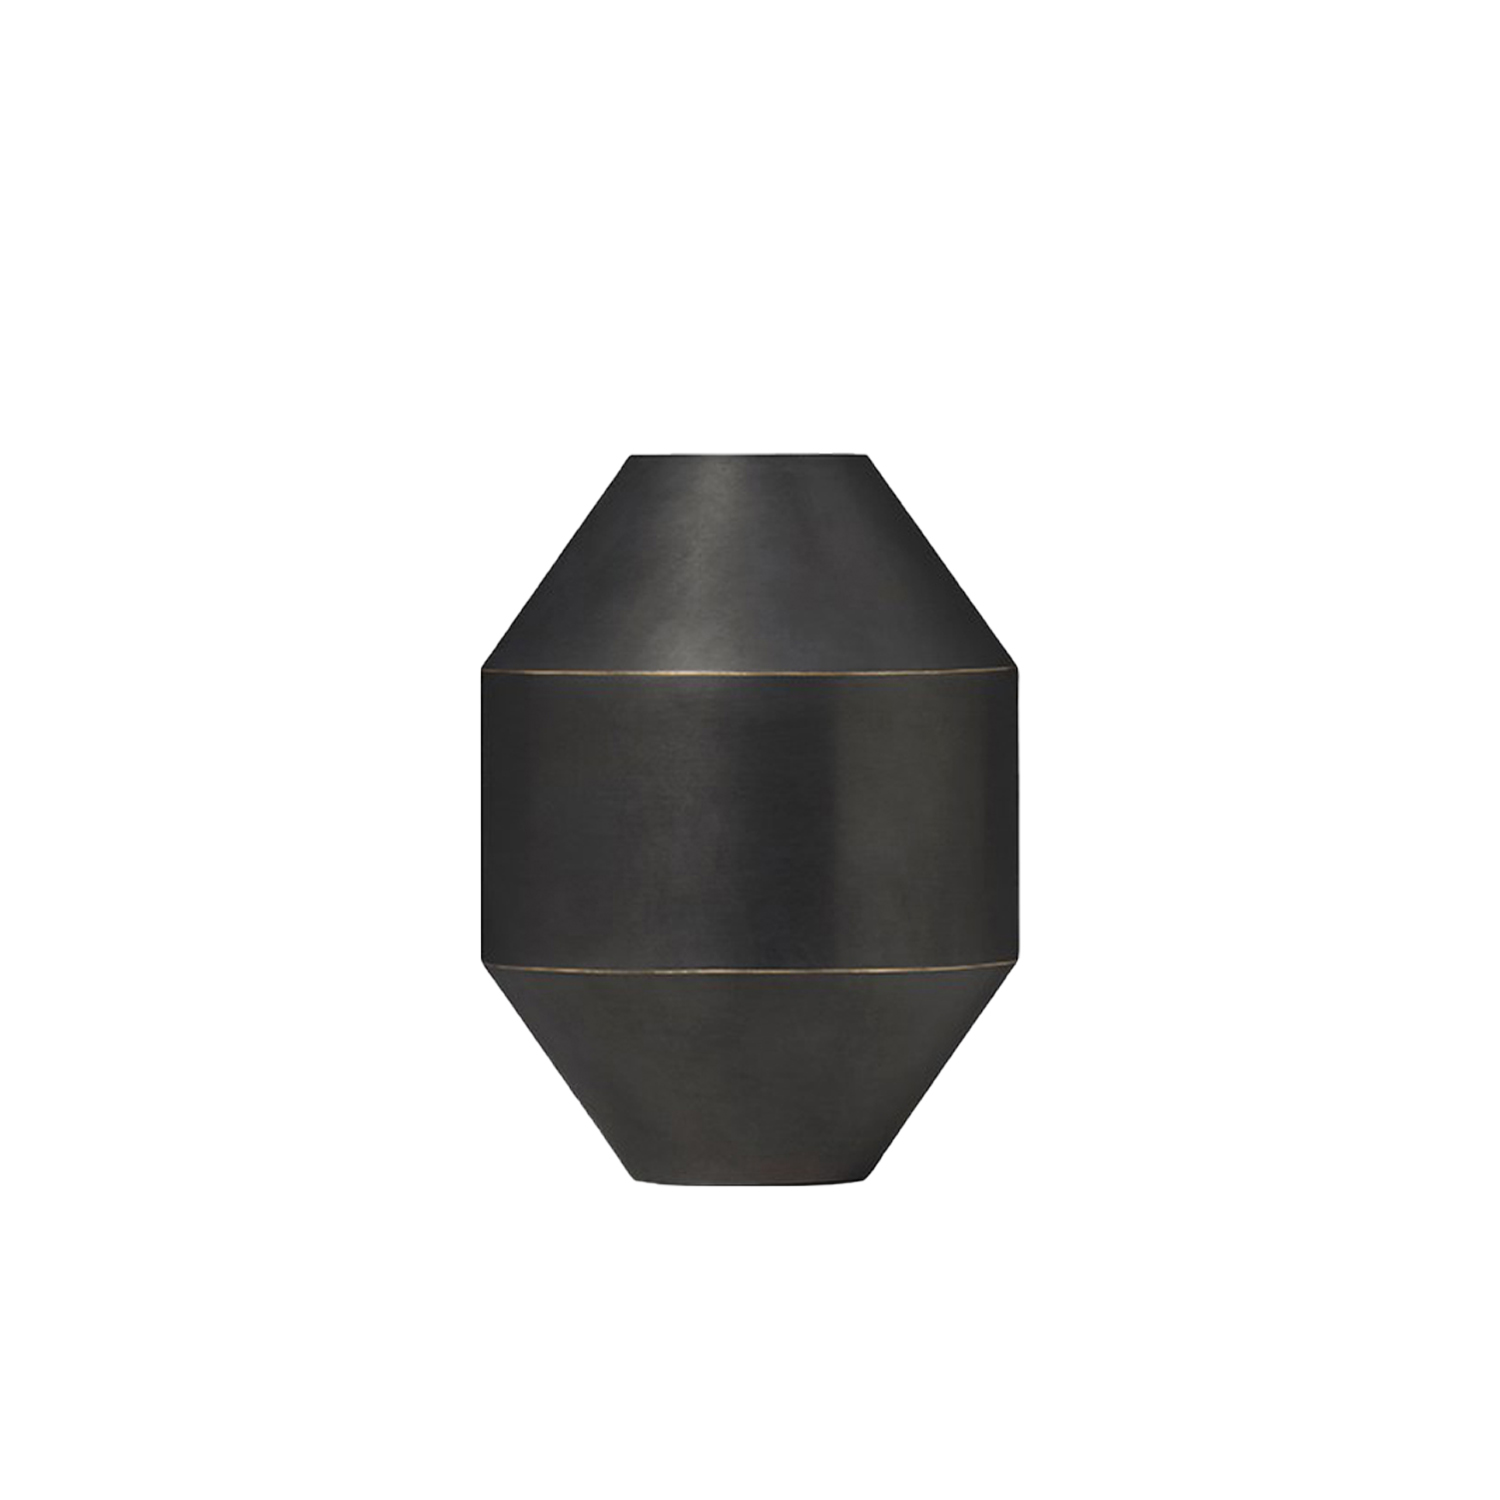 Hydro Vase - Referencing classic ceramic vases and ancient Greek vessels, the Hydro Vase makes a modern statement that incorporates the material properties and appeal of brass.  Fredericia introduces Complements – A new line of material-driven pieces conceived as collector's items to complement our portfolio.   Complements is a new collection of designs that join our main collection of furniture. A line of collectibles rooted in our passion for materiality comprised of functional pieces with aesthetic qualities that are equally appealing as decorative elements. From objects and small functional furniture to hidden gems from our archives with a renewed relevance.   With Complements, we expand on our expertise with materiality to encompass a range of accessories and furnishings that - together with our line of furniture - create a look and feel for an entire interior or concept.   Drawing on our legacy of working with wood and leather, we've explored other materials with textures, colours and compositions that bring an extra dimension to the atmosphere. The result is a celebration of materiality in well-considered concepts that are refined, authentic, inviting and crafted to last.   We're always open to designers, where we feel a strong connection with their work and a mutual mindset. For Complements, we've engaged with the next wave of new talent in Denmark and abroad. Both new and established names, who share our affinity for honest materials and purposeful design.   Complements remains true to our design heritage at Fredericia while staying in tune with the world at large. Each piece is distinctive, yet they all reflect our pioneering spirit to create essentials with presence and permanence.   Collectibles to cherish now – and for generations to come. | Matter of Stuff